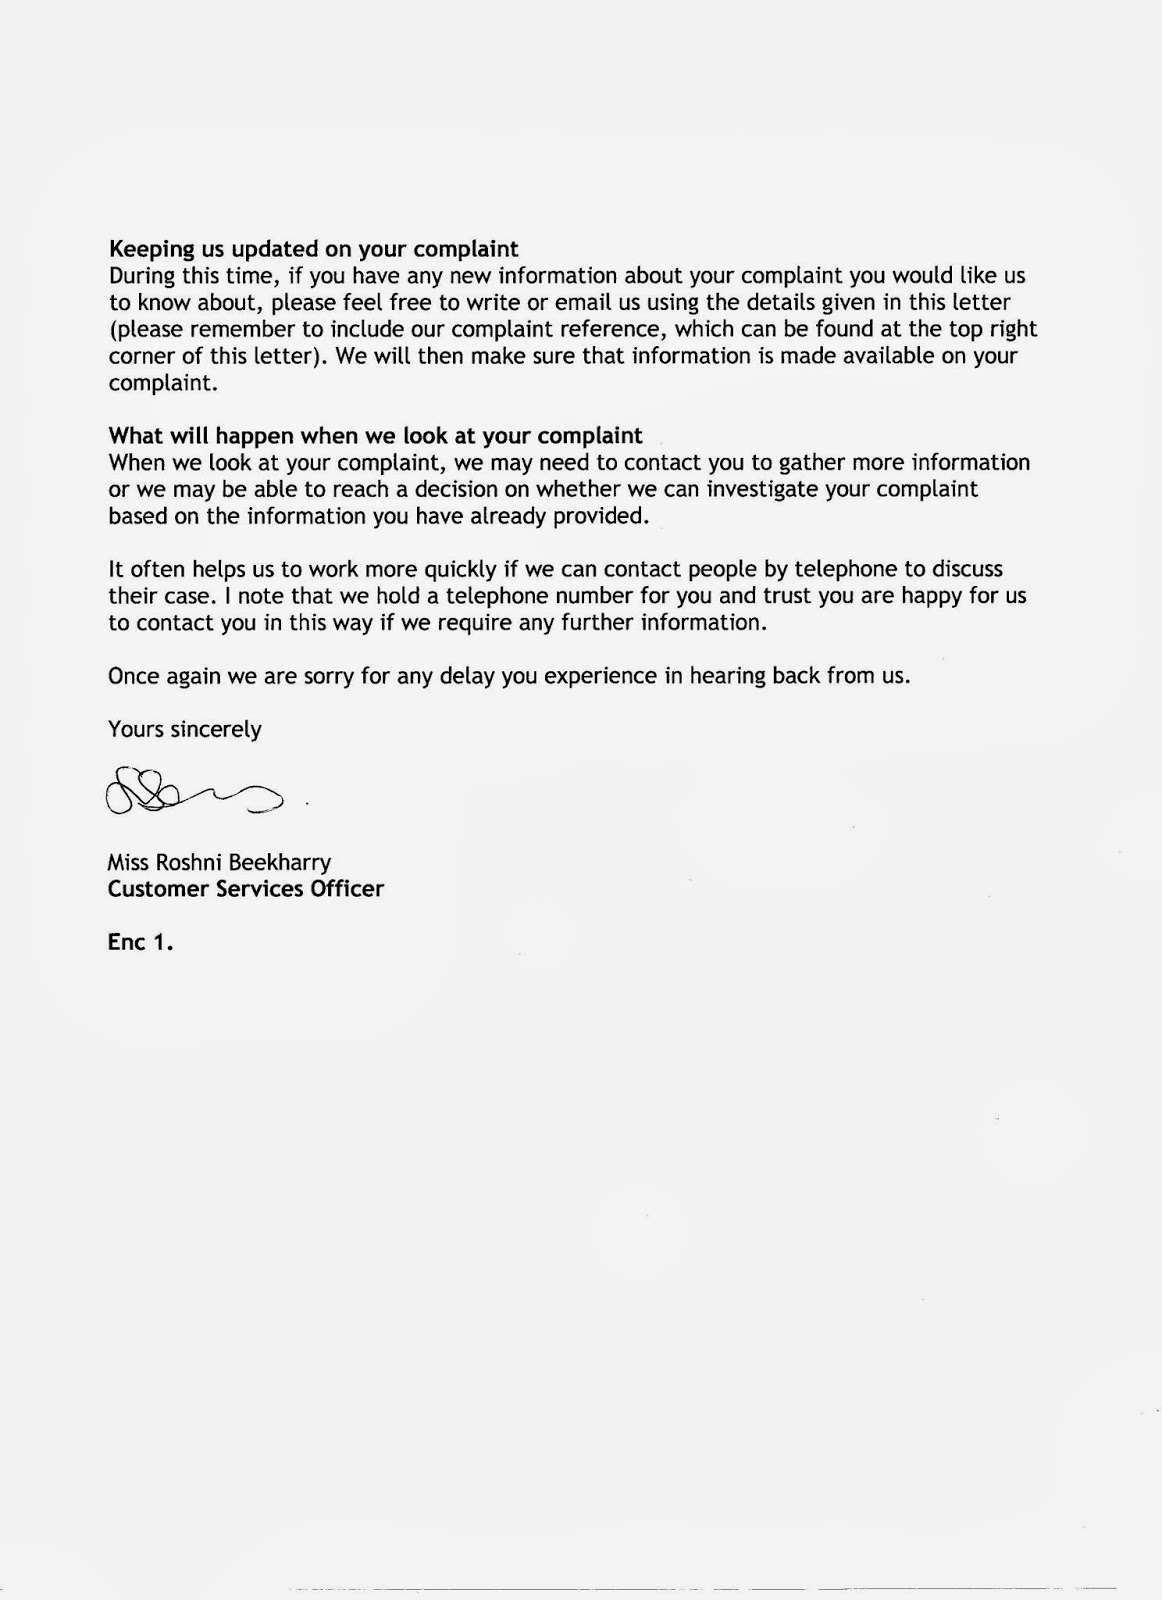 Can you help me with my complaint letter?